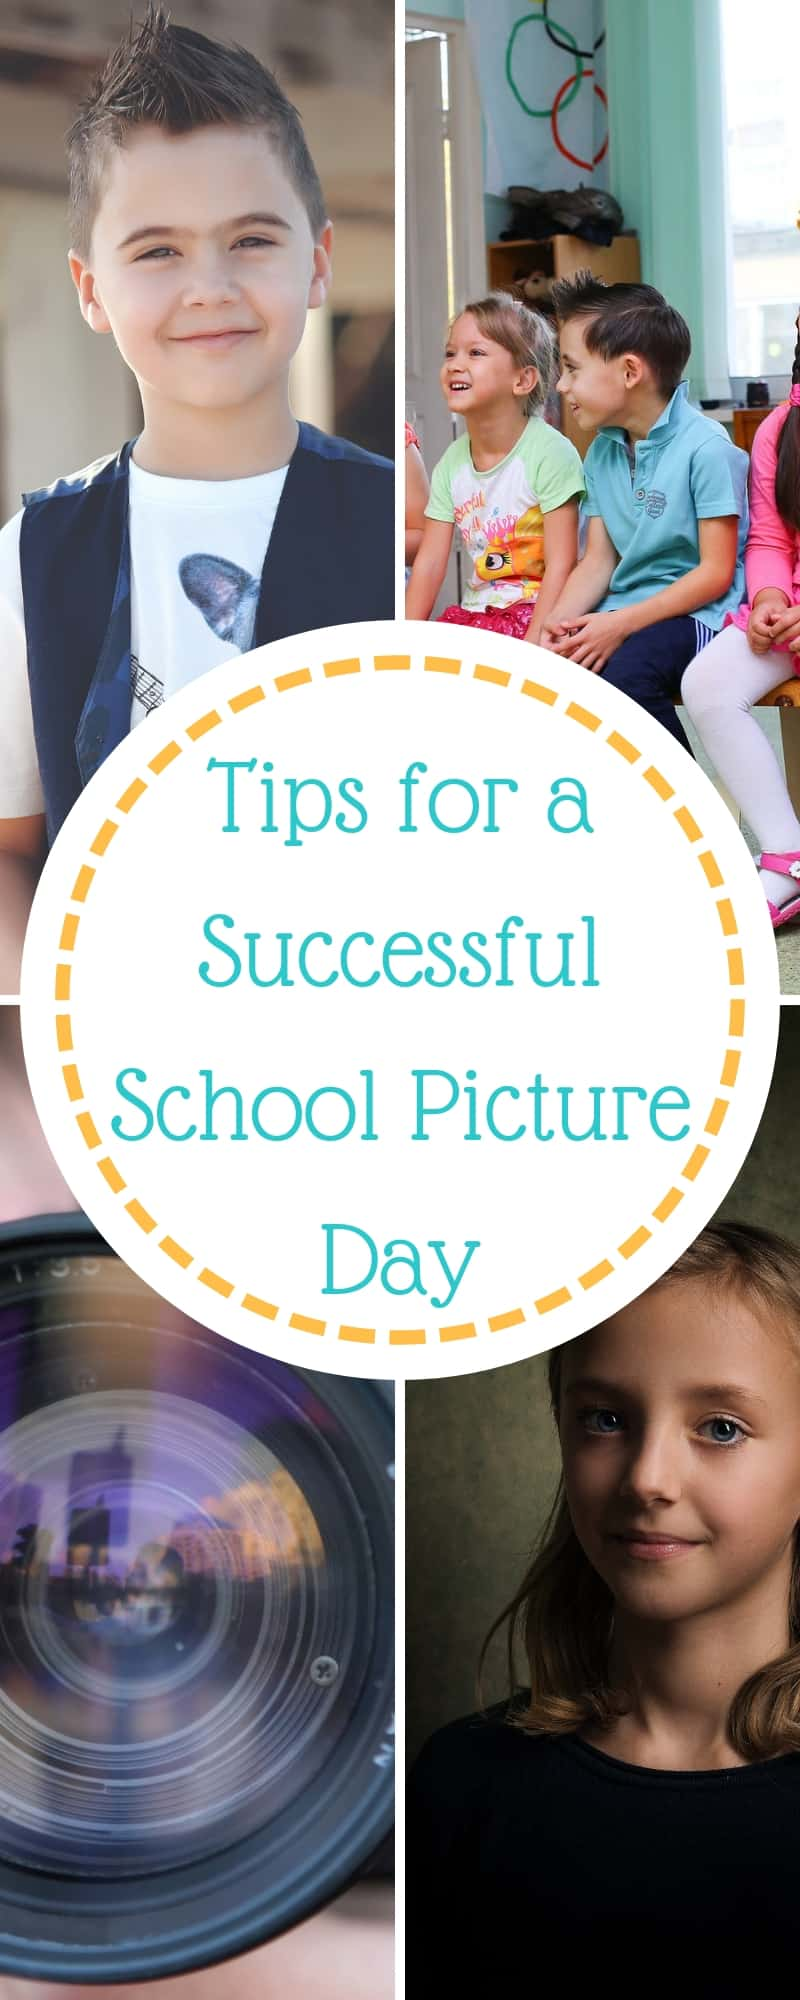 Tips for a Successful School Picture Day